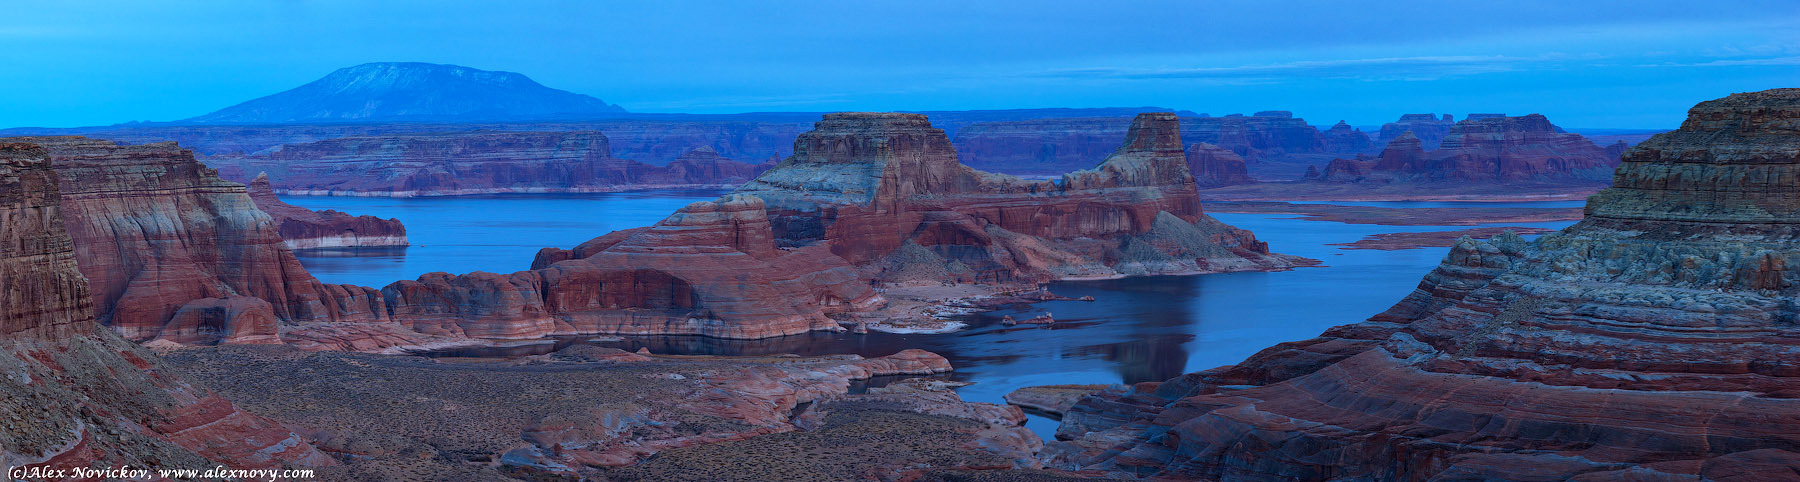 Panorama in cold colours | landscape, nature, outdoor, panorama, water, blue sky, stones, rock, cold colours, horizon